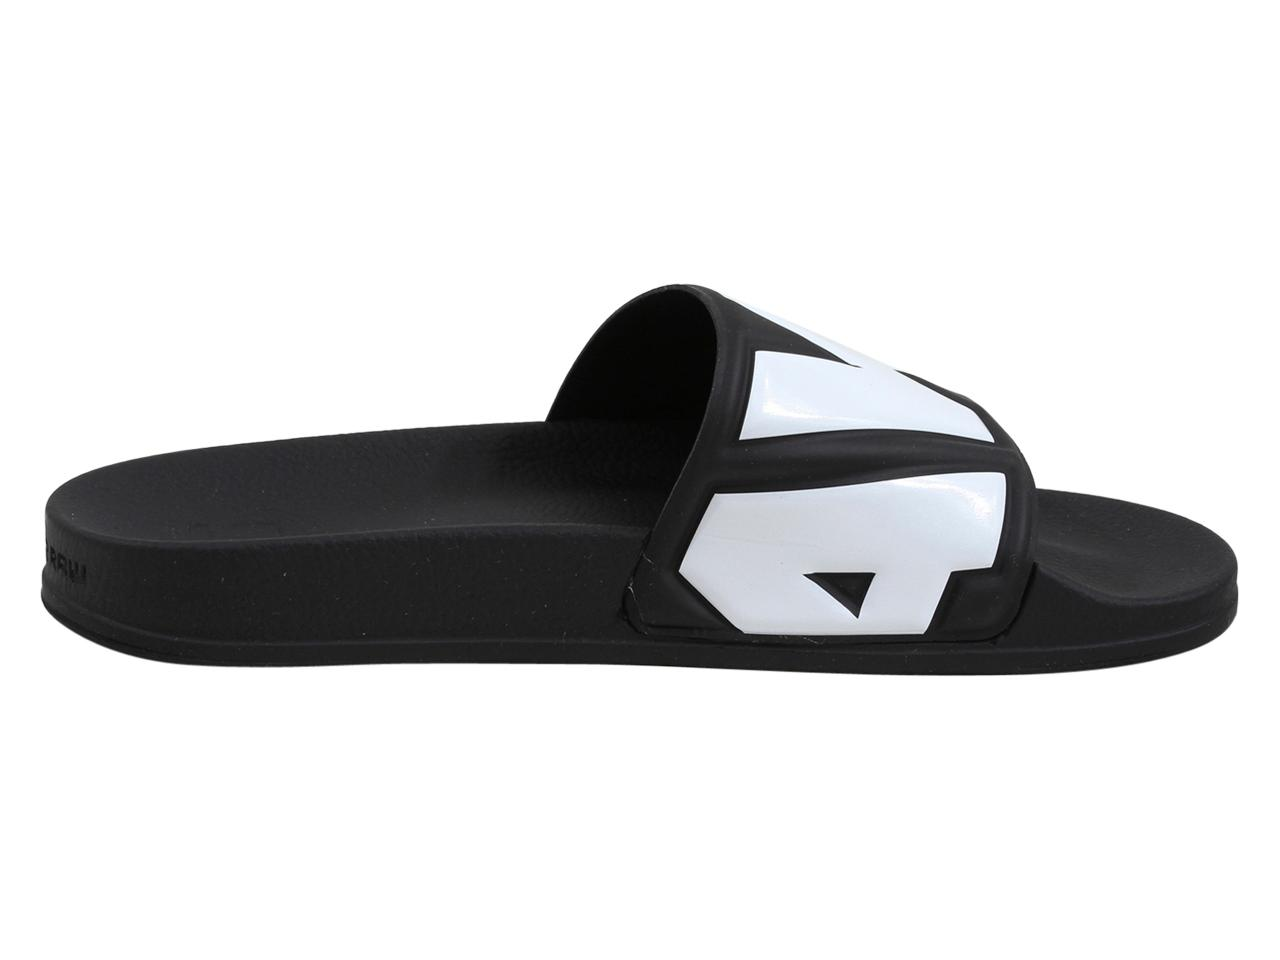 bc0ac4db96bf G-Star Raw Men s Cart-Slide-II Slides Sandals Shoes